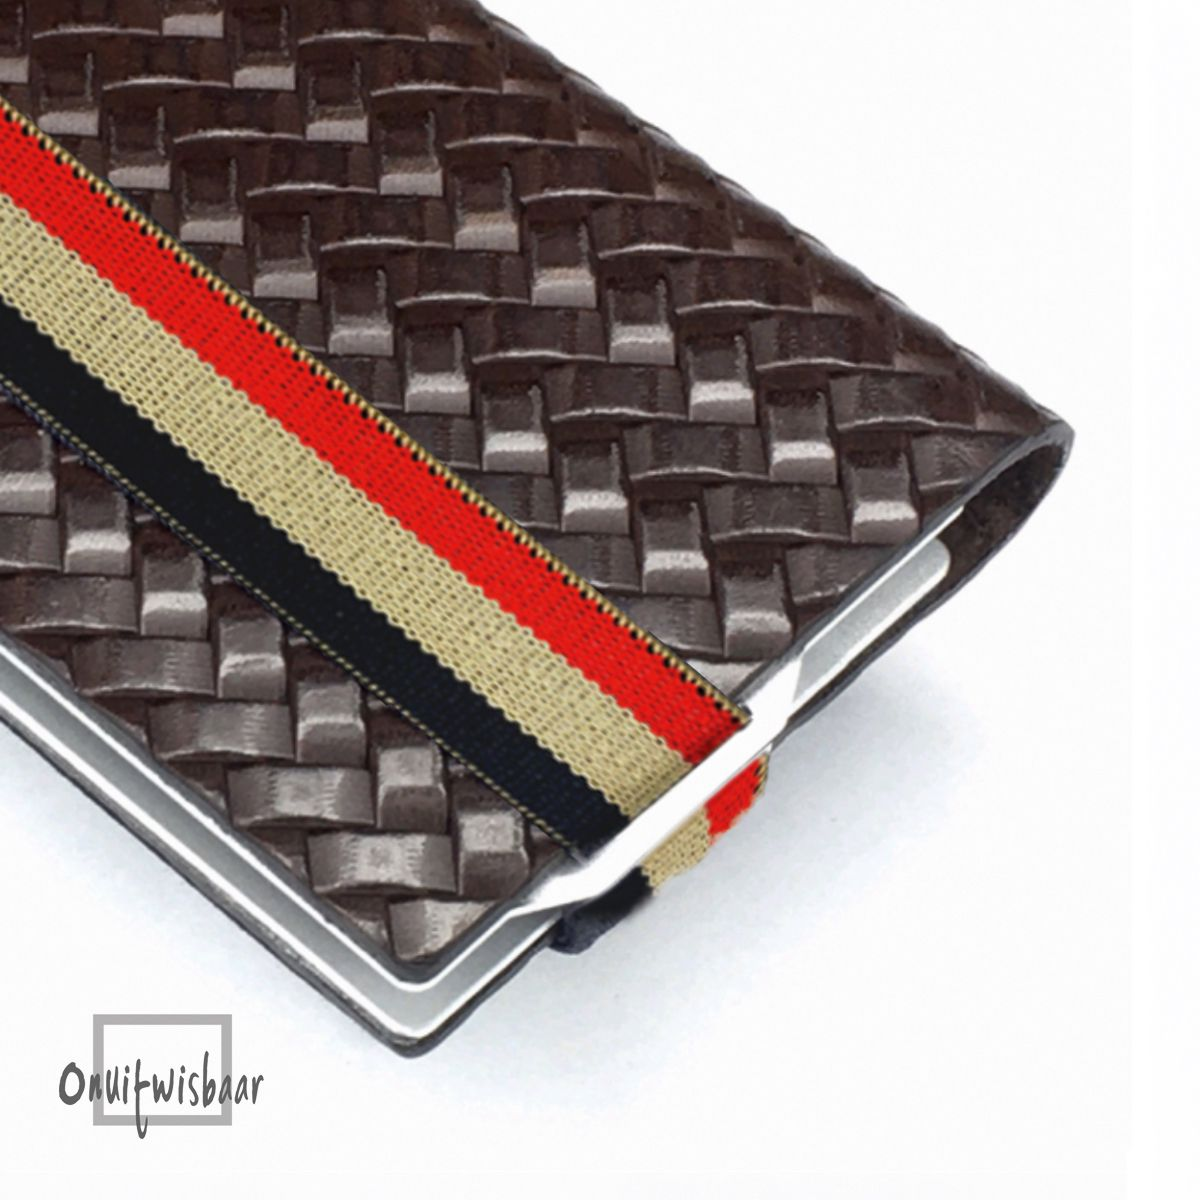 q7 wallet weave brown 3chol